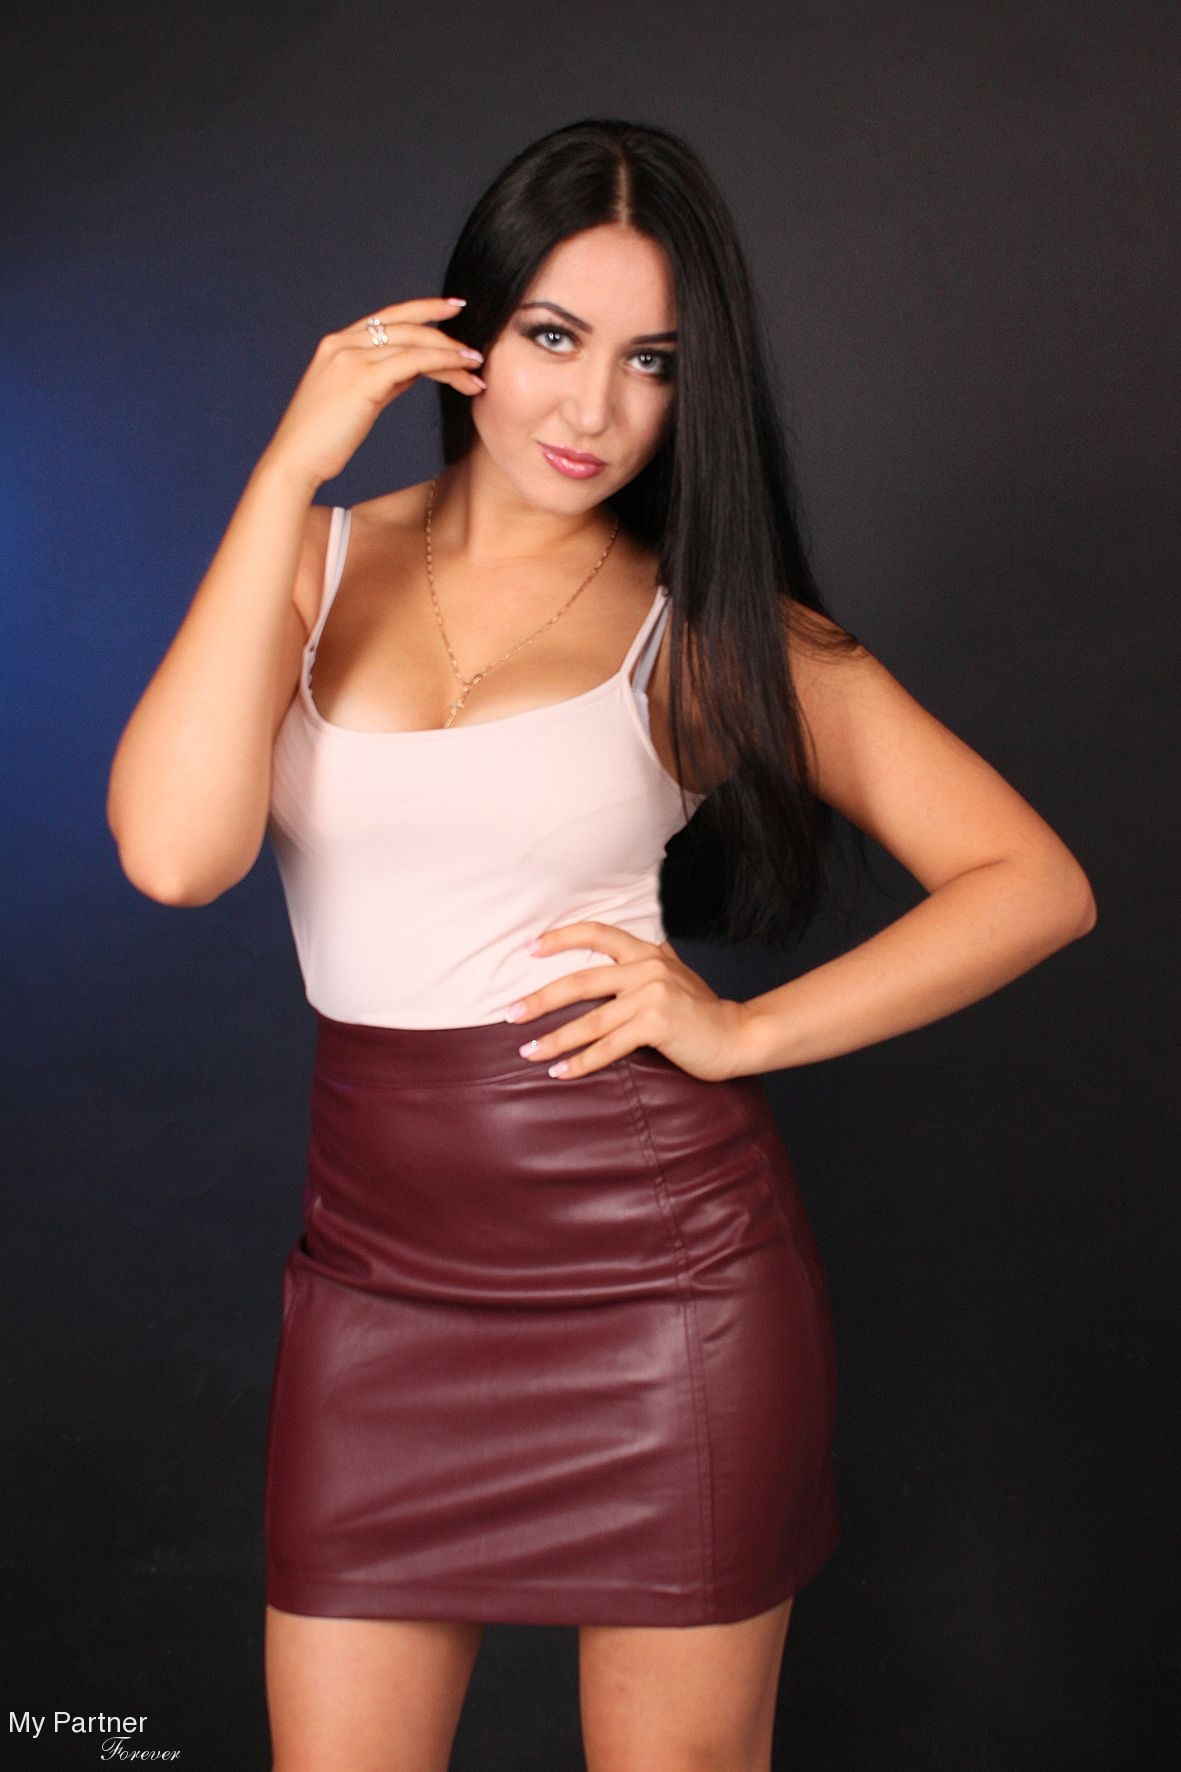 corbettsville latina women dating site Meet latin women or latin men with one of the largest completely free latin online dating site's more than 3 million singles to discover browse, search, connect, date, migenteamor.